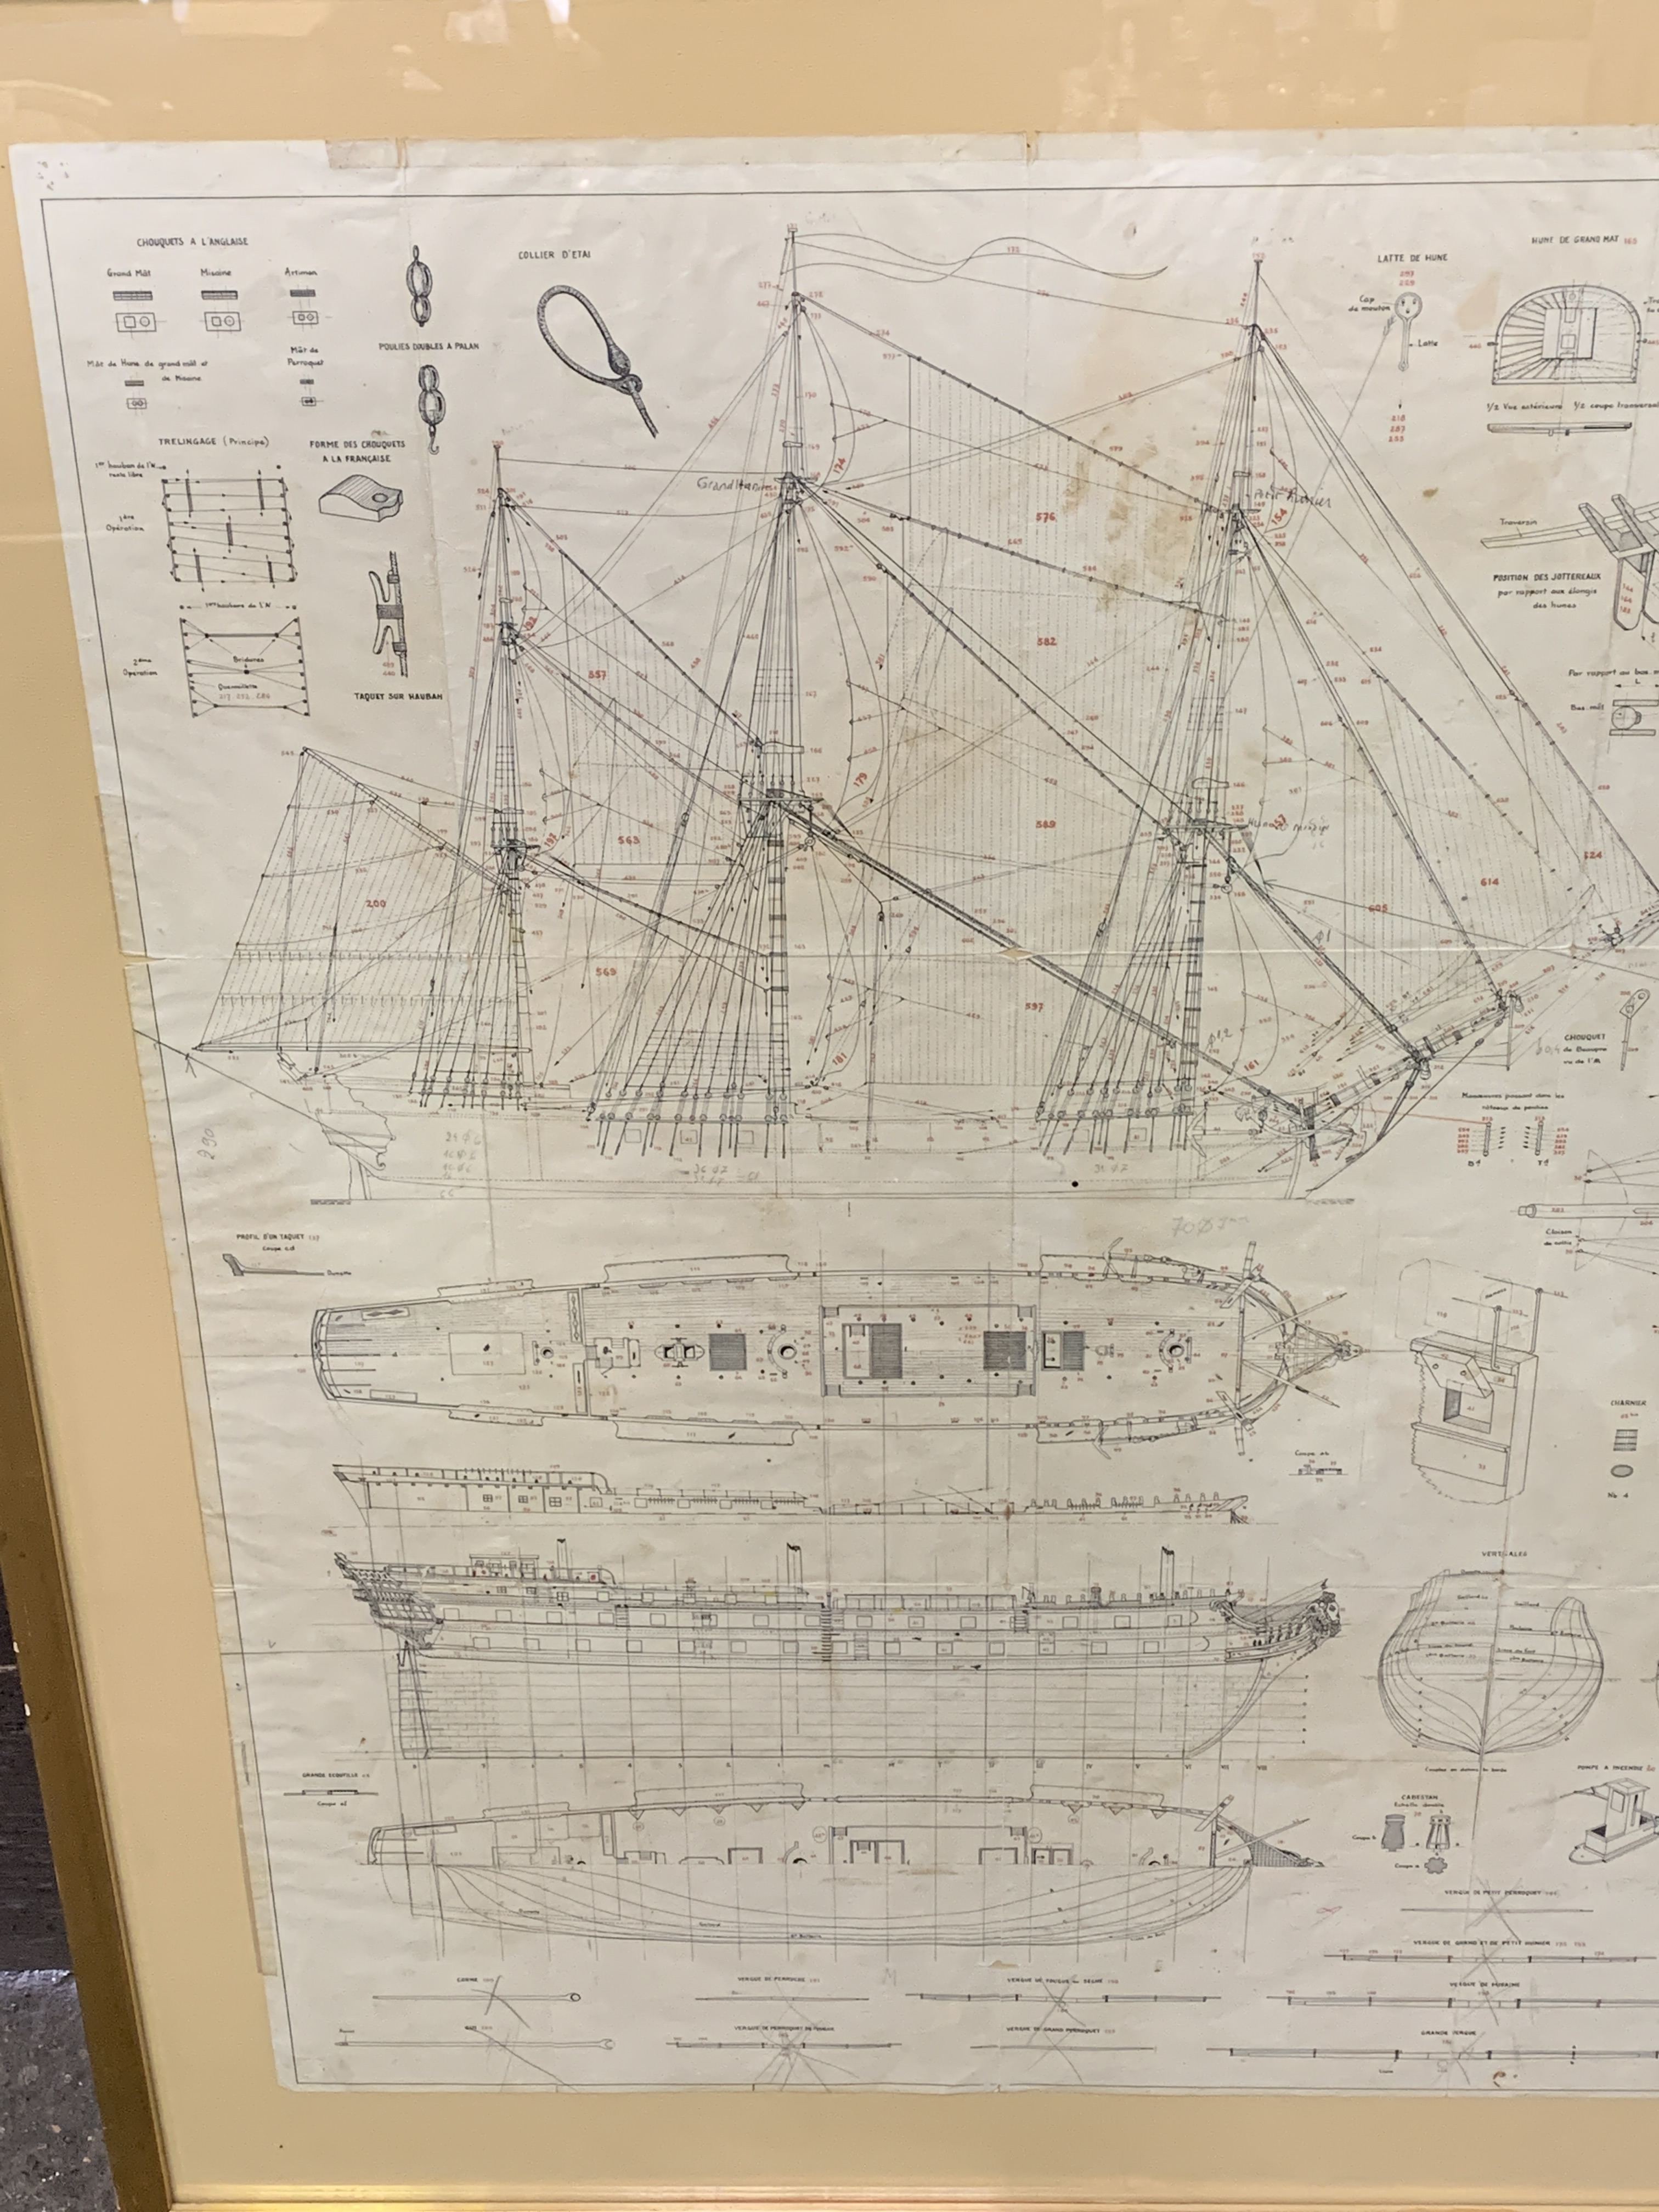 A Musee de La Marie, 1/150 scale plan of the 74 gun warship Le Superbe - Image 2 of 5